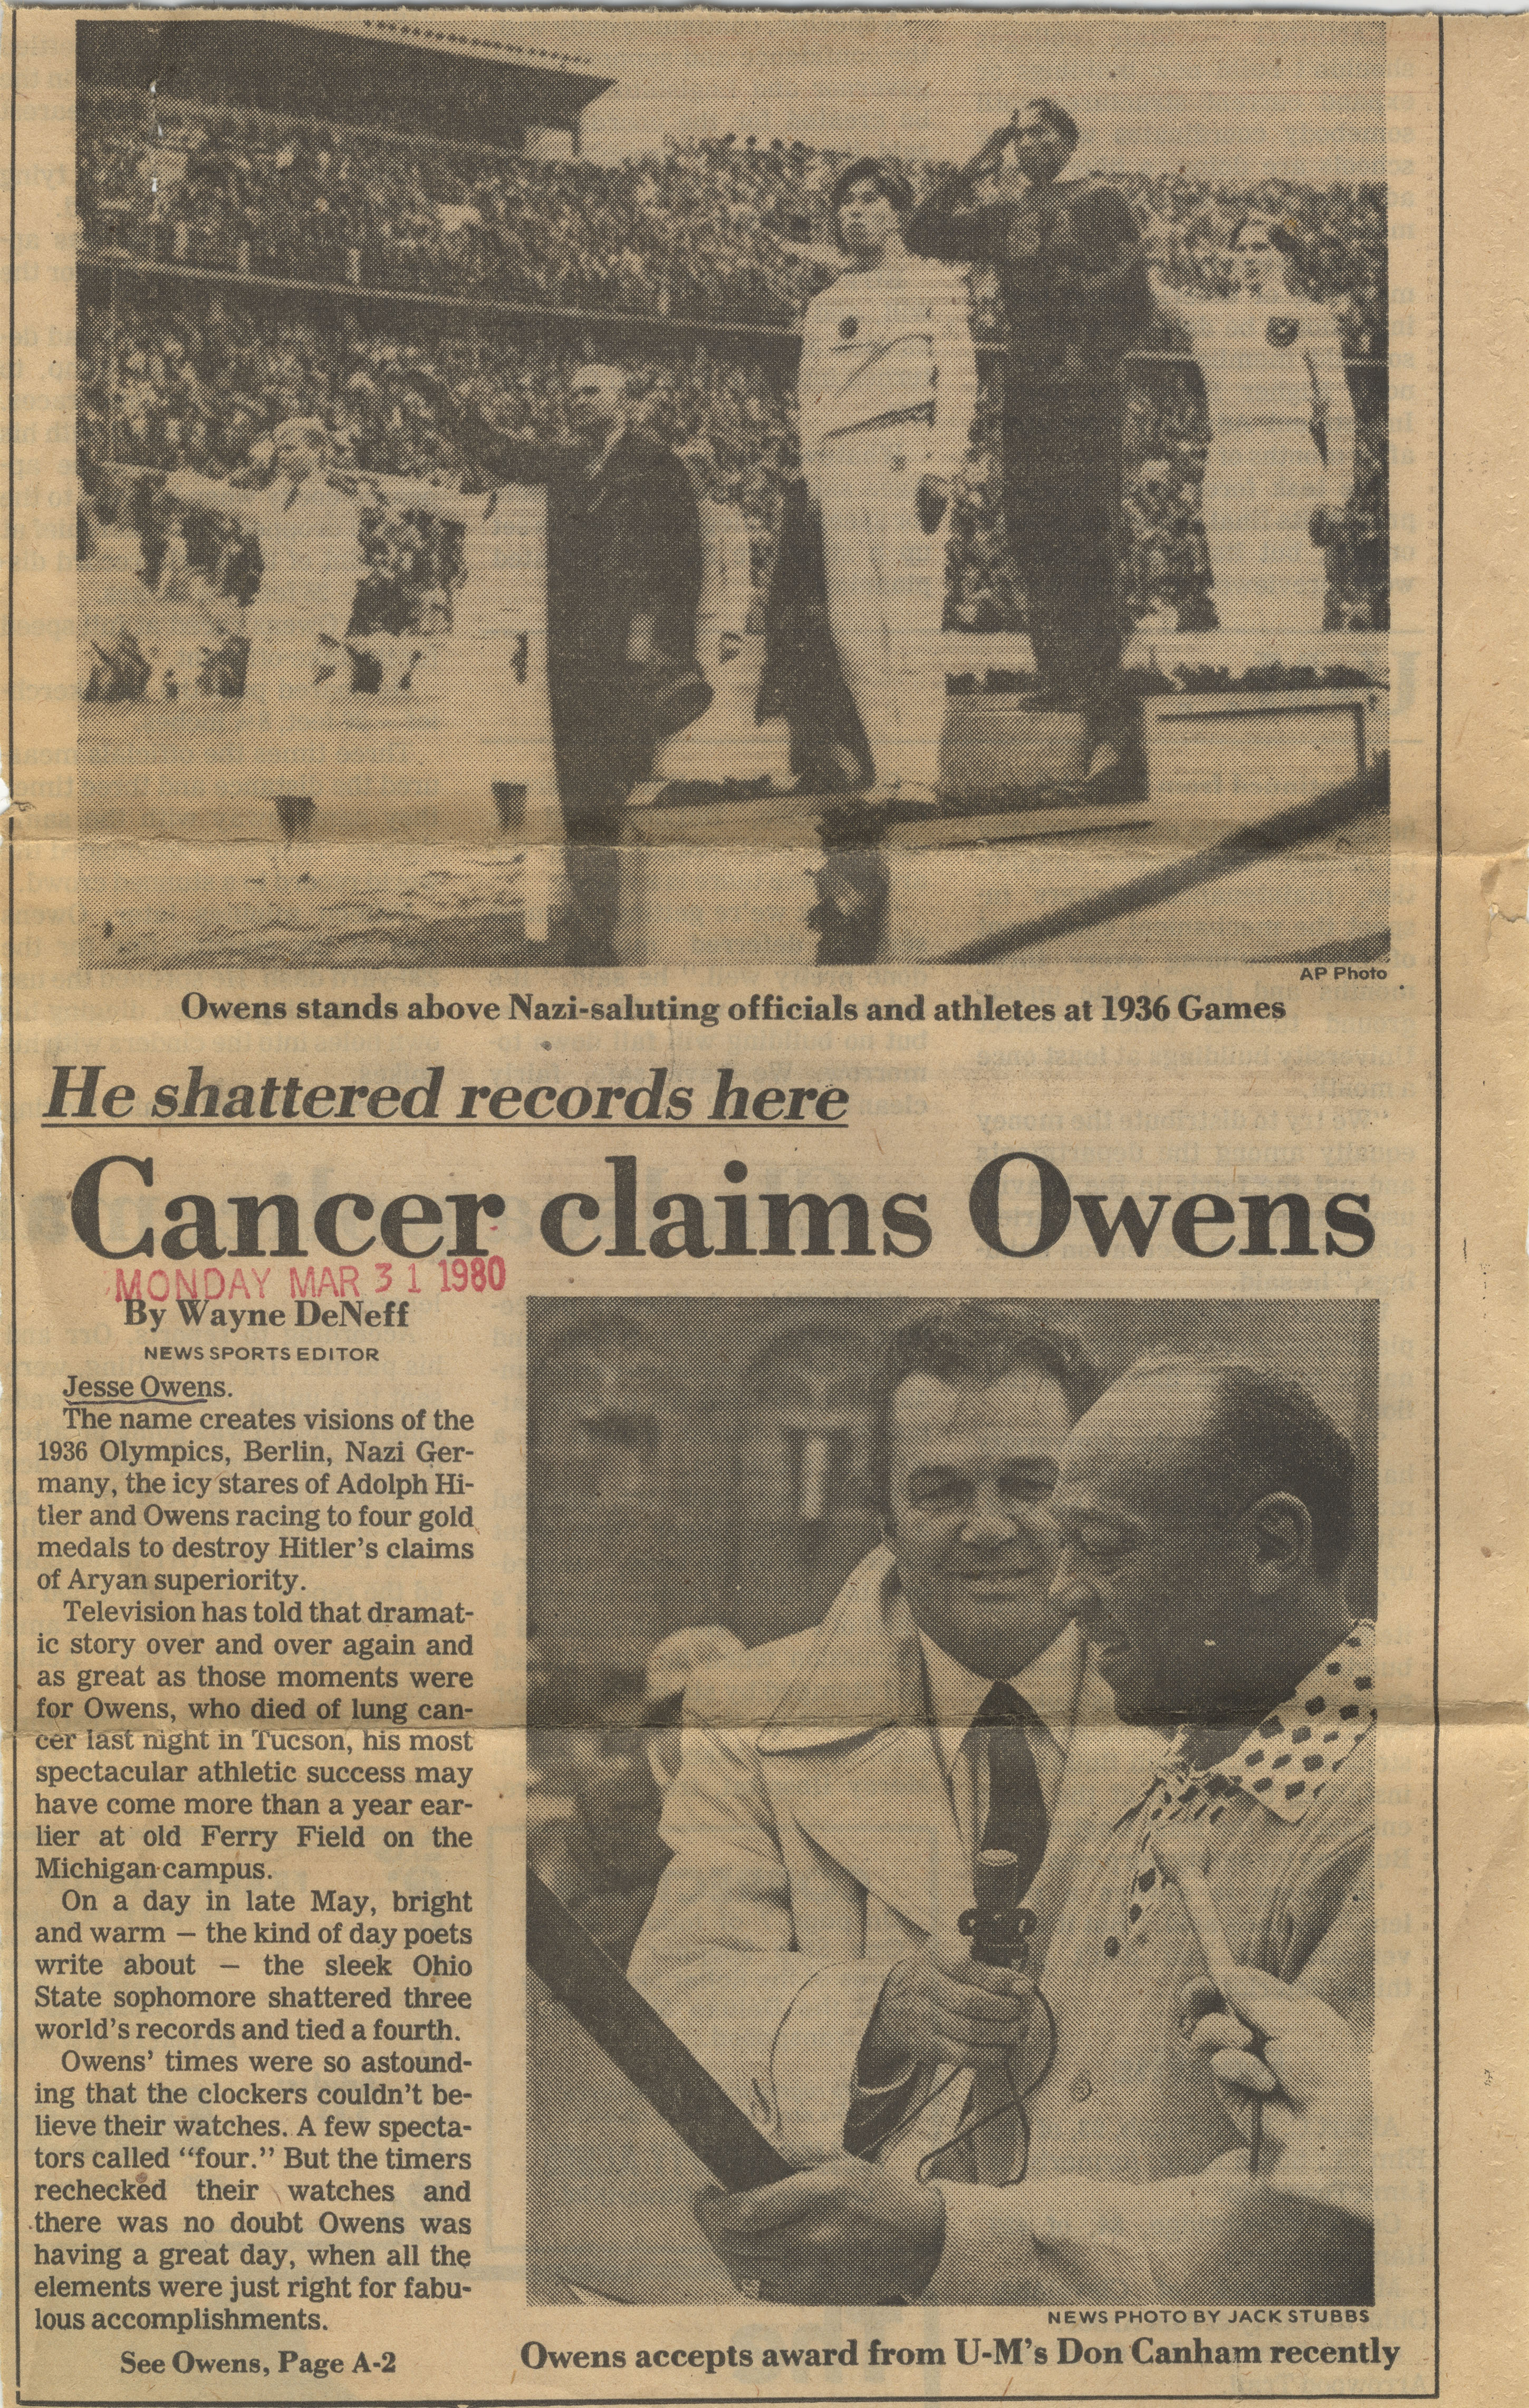 Cancer claims Owens image